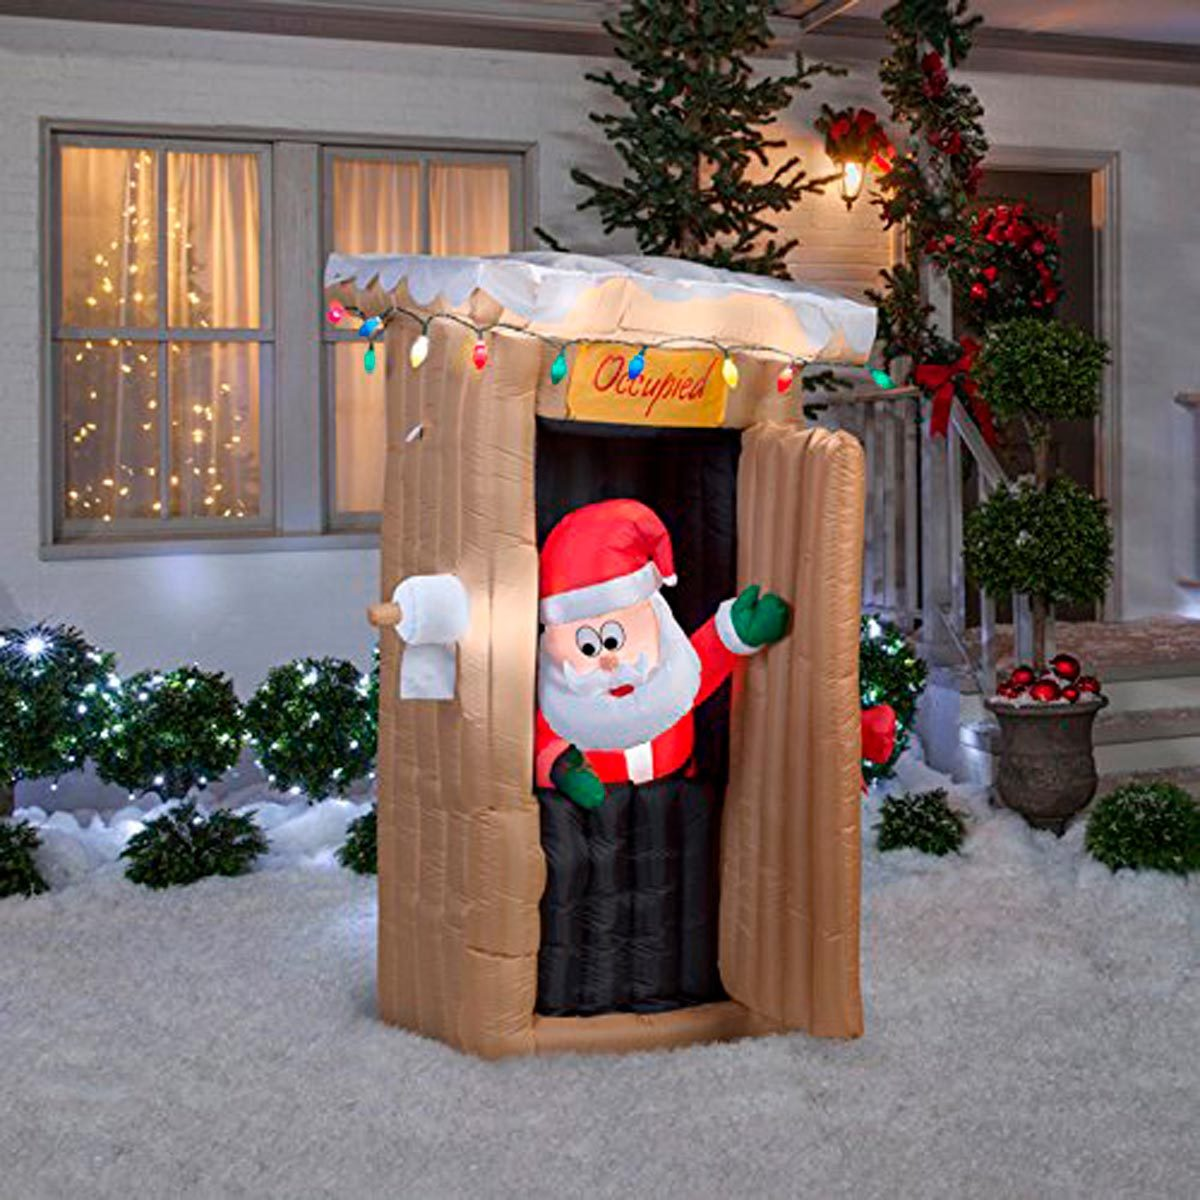 11 Christmas Inflatables Your Neighbors Might Not Like